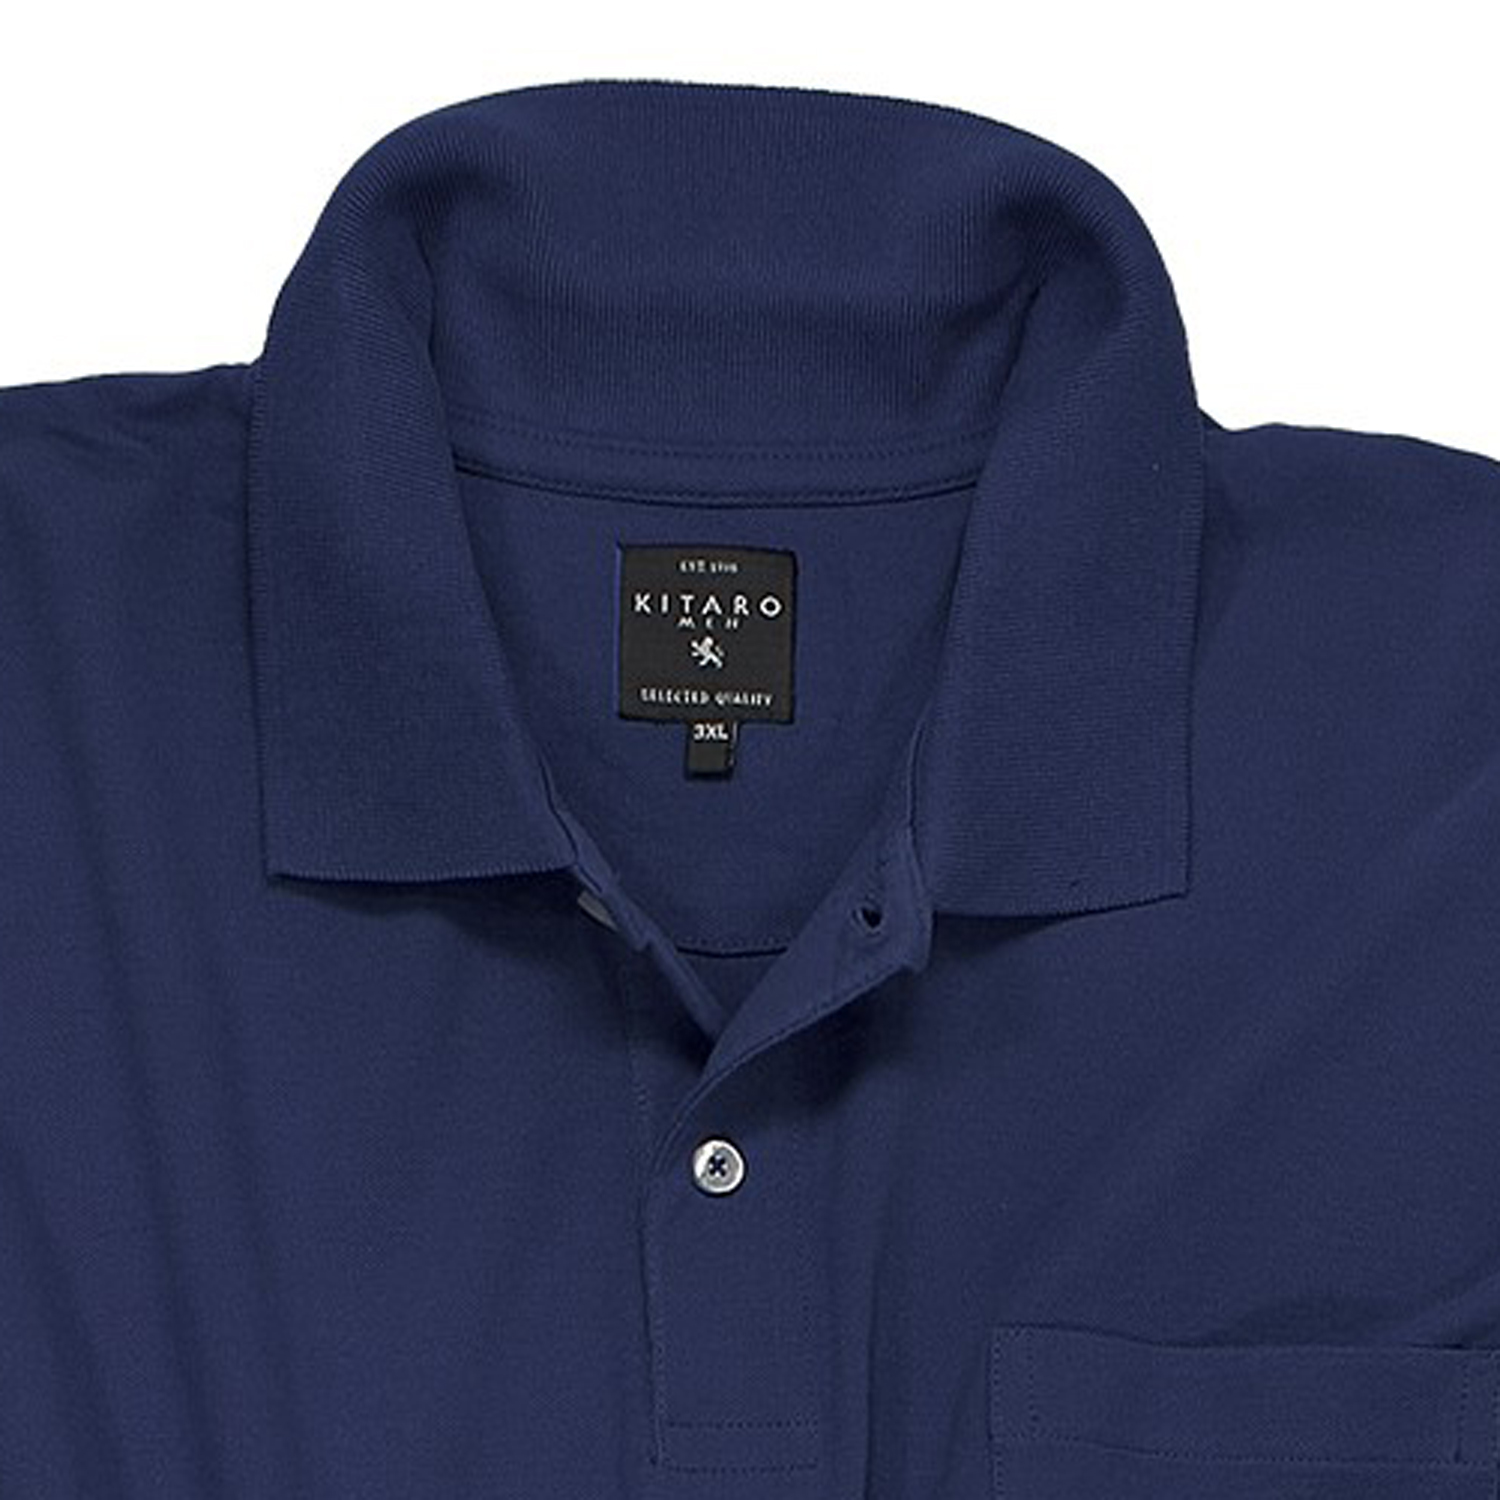 Detail Image to Poloshirt in navy by Kitaro in oversize 5XL